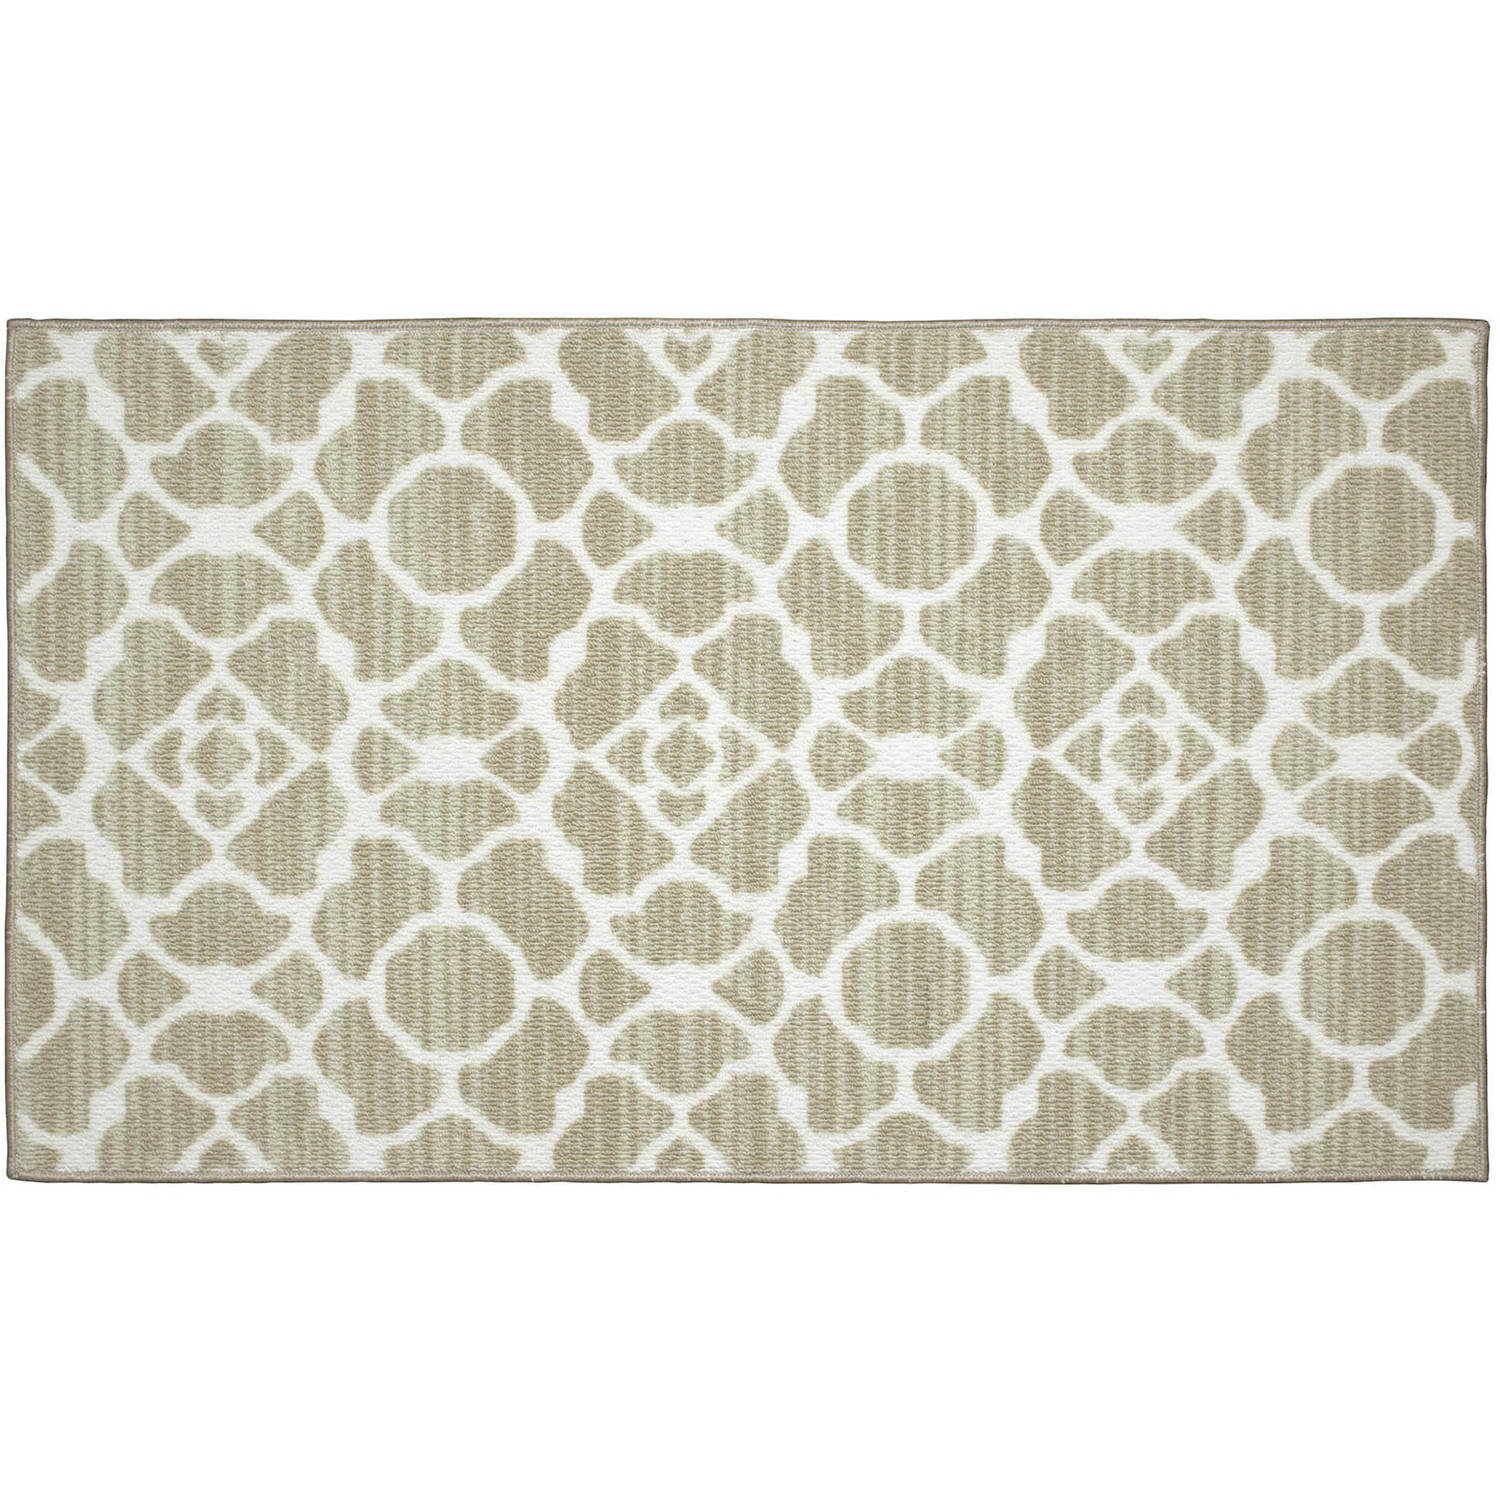 Structures Kohl Textured Printed Accent Rug by Generic